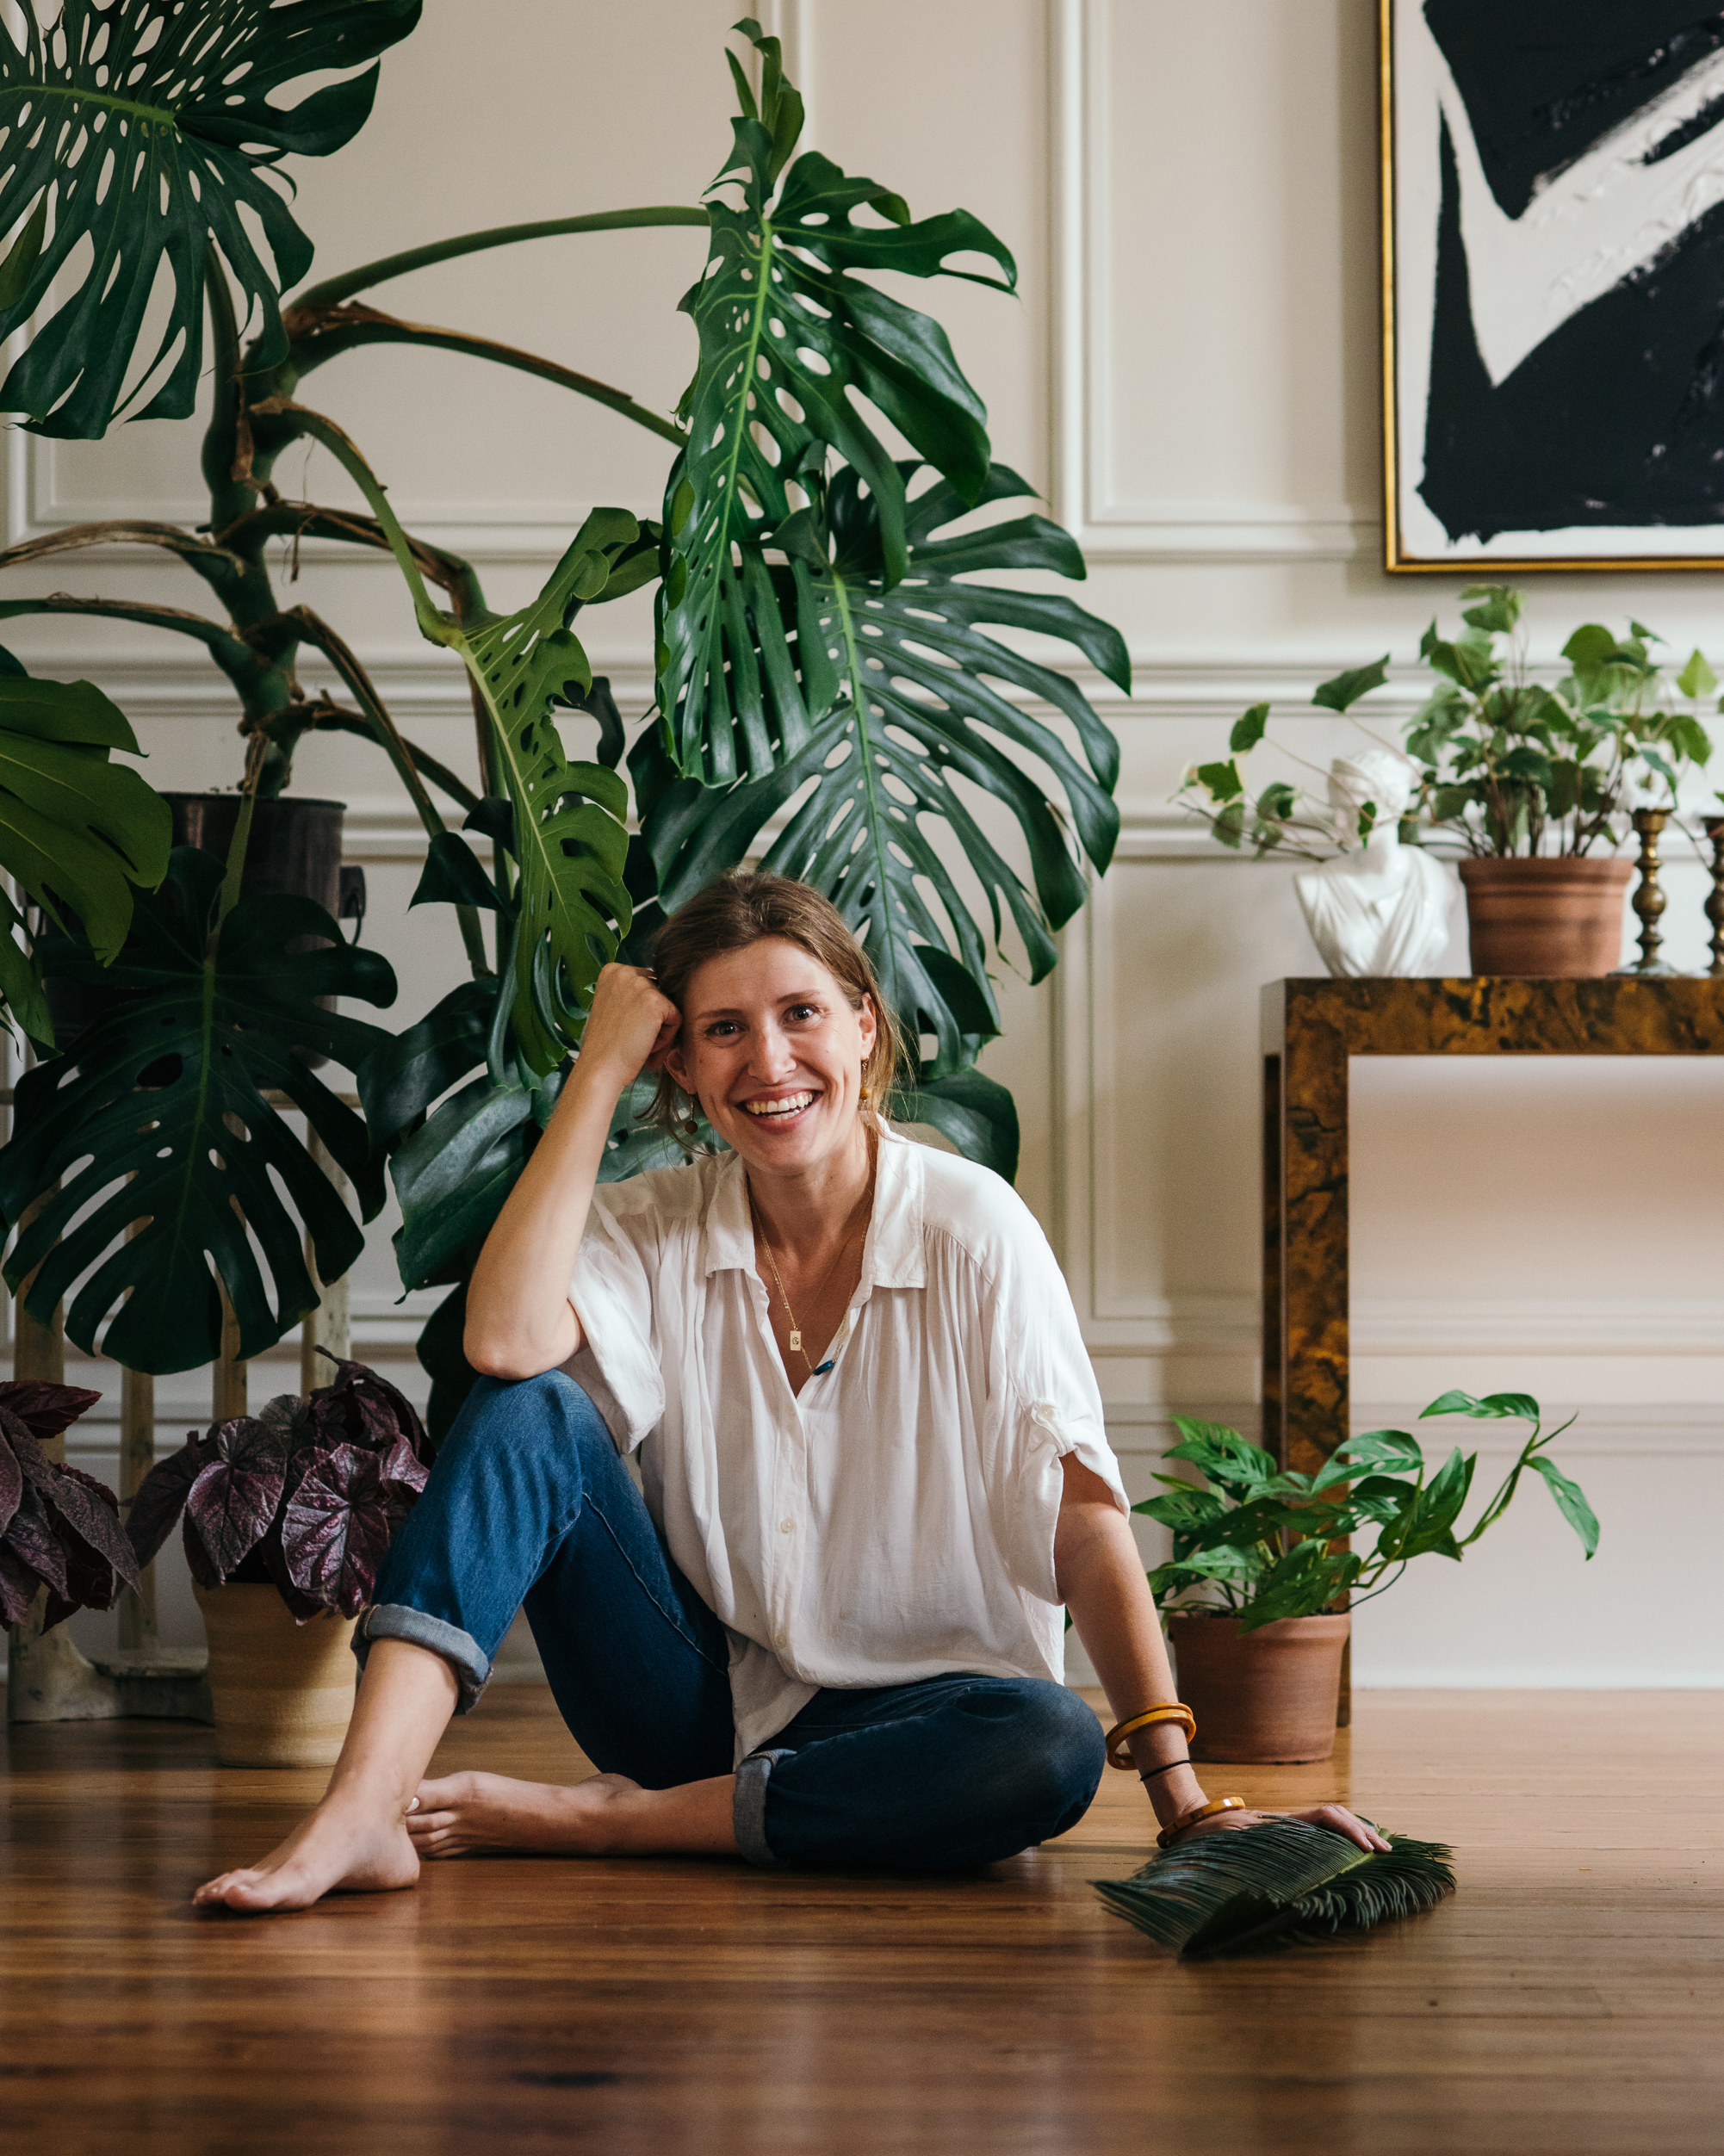 - Originally from South Georgia, Tiny Nest founder Abby Barber grew up surrounded by plants. In the woods where she lived, most days began and ended outdoors covered in dirt.After learning the ropes in greenhouses of great-grandmothers and gardens of her grandfather, she traveled to work in Southern California and Northern New Mexico where she decided working with her hands in the soil is what she wanted to do professionally.She obtained a degree in agriculture, with a focus on sustainability and has been working with plants, indoors and outdoors, for the last 8 years. She currently focuses on beautifying living and workspaces in New Orleans, LA